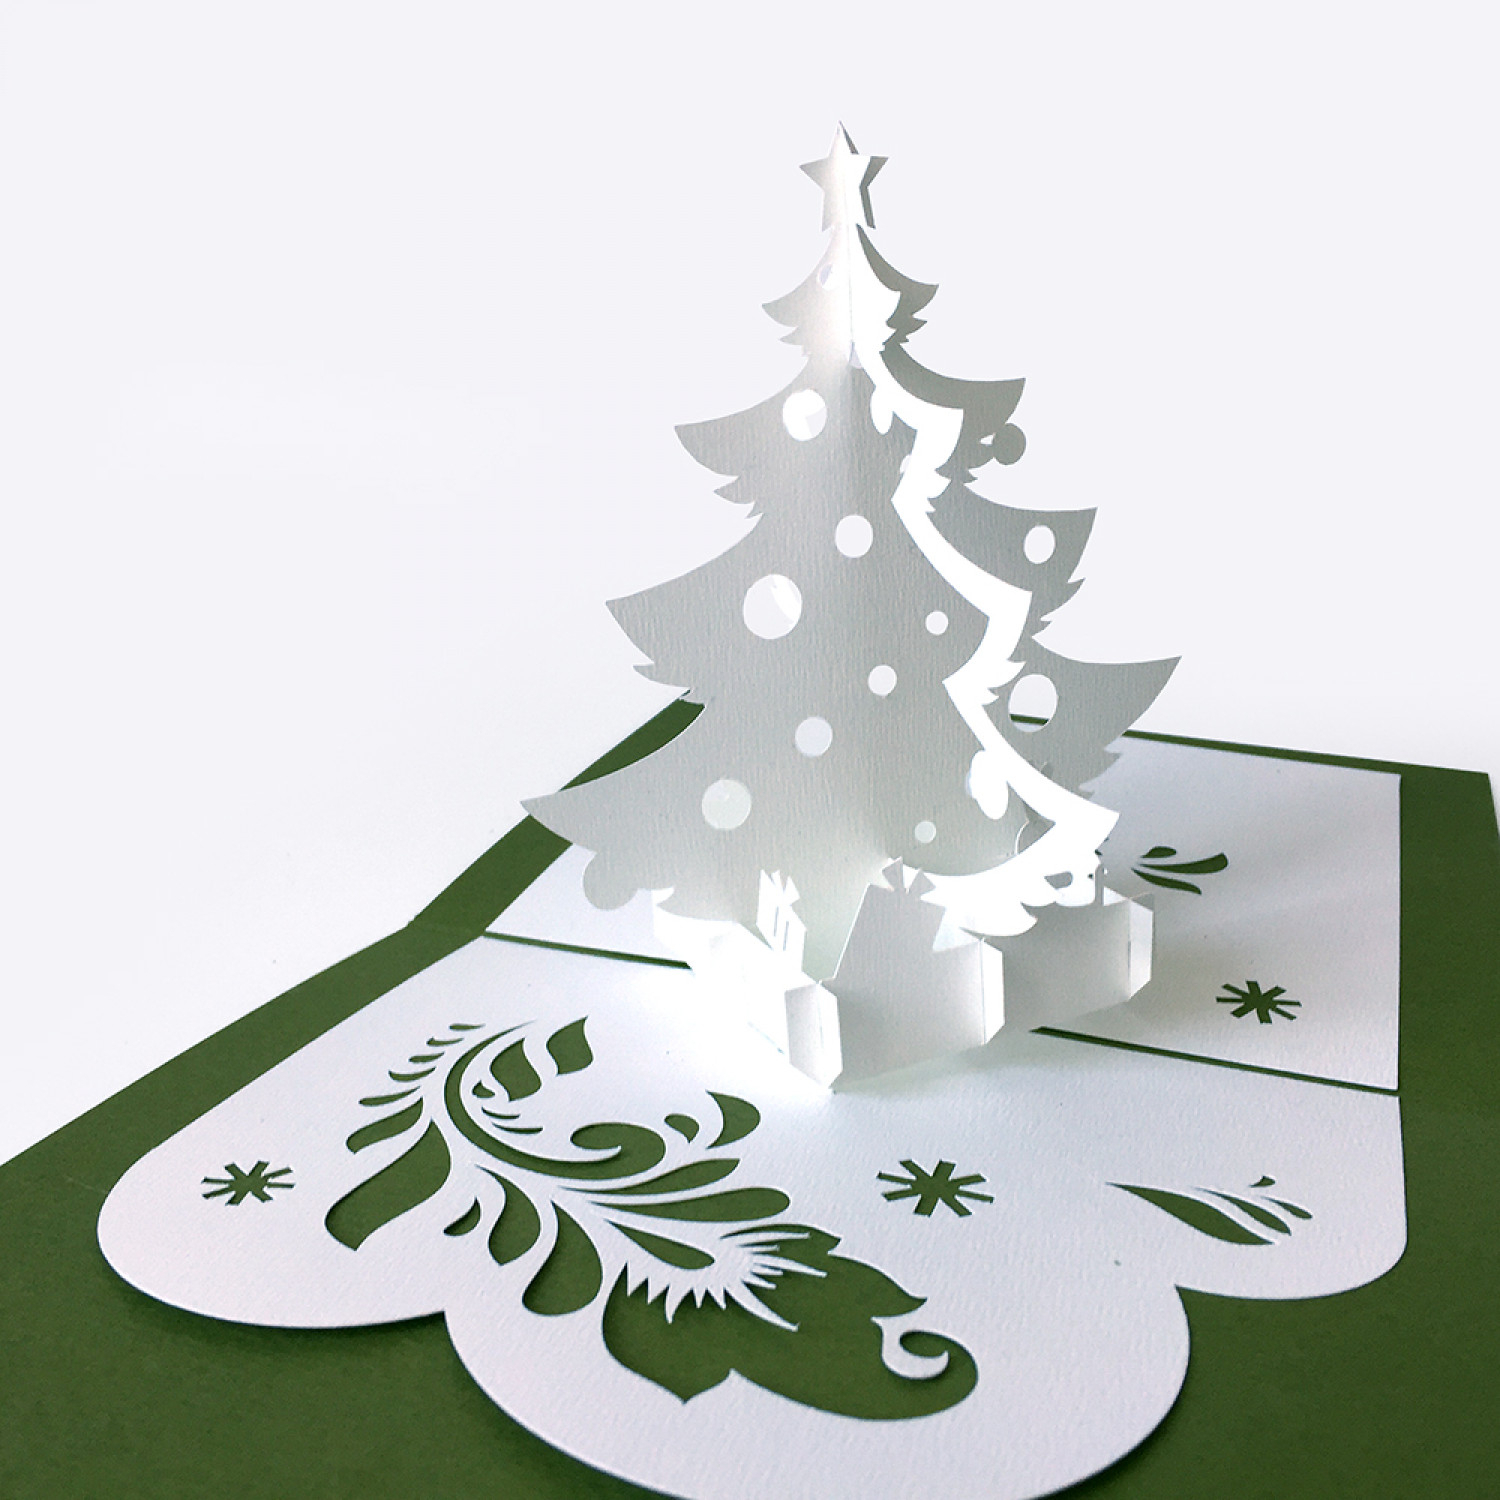 Template Pop-Up Card «Christmas Tree» for Printable Christmas Tree Templates 3D